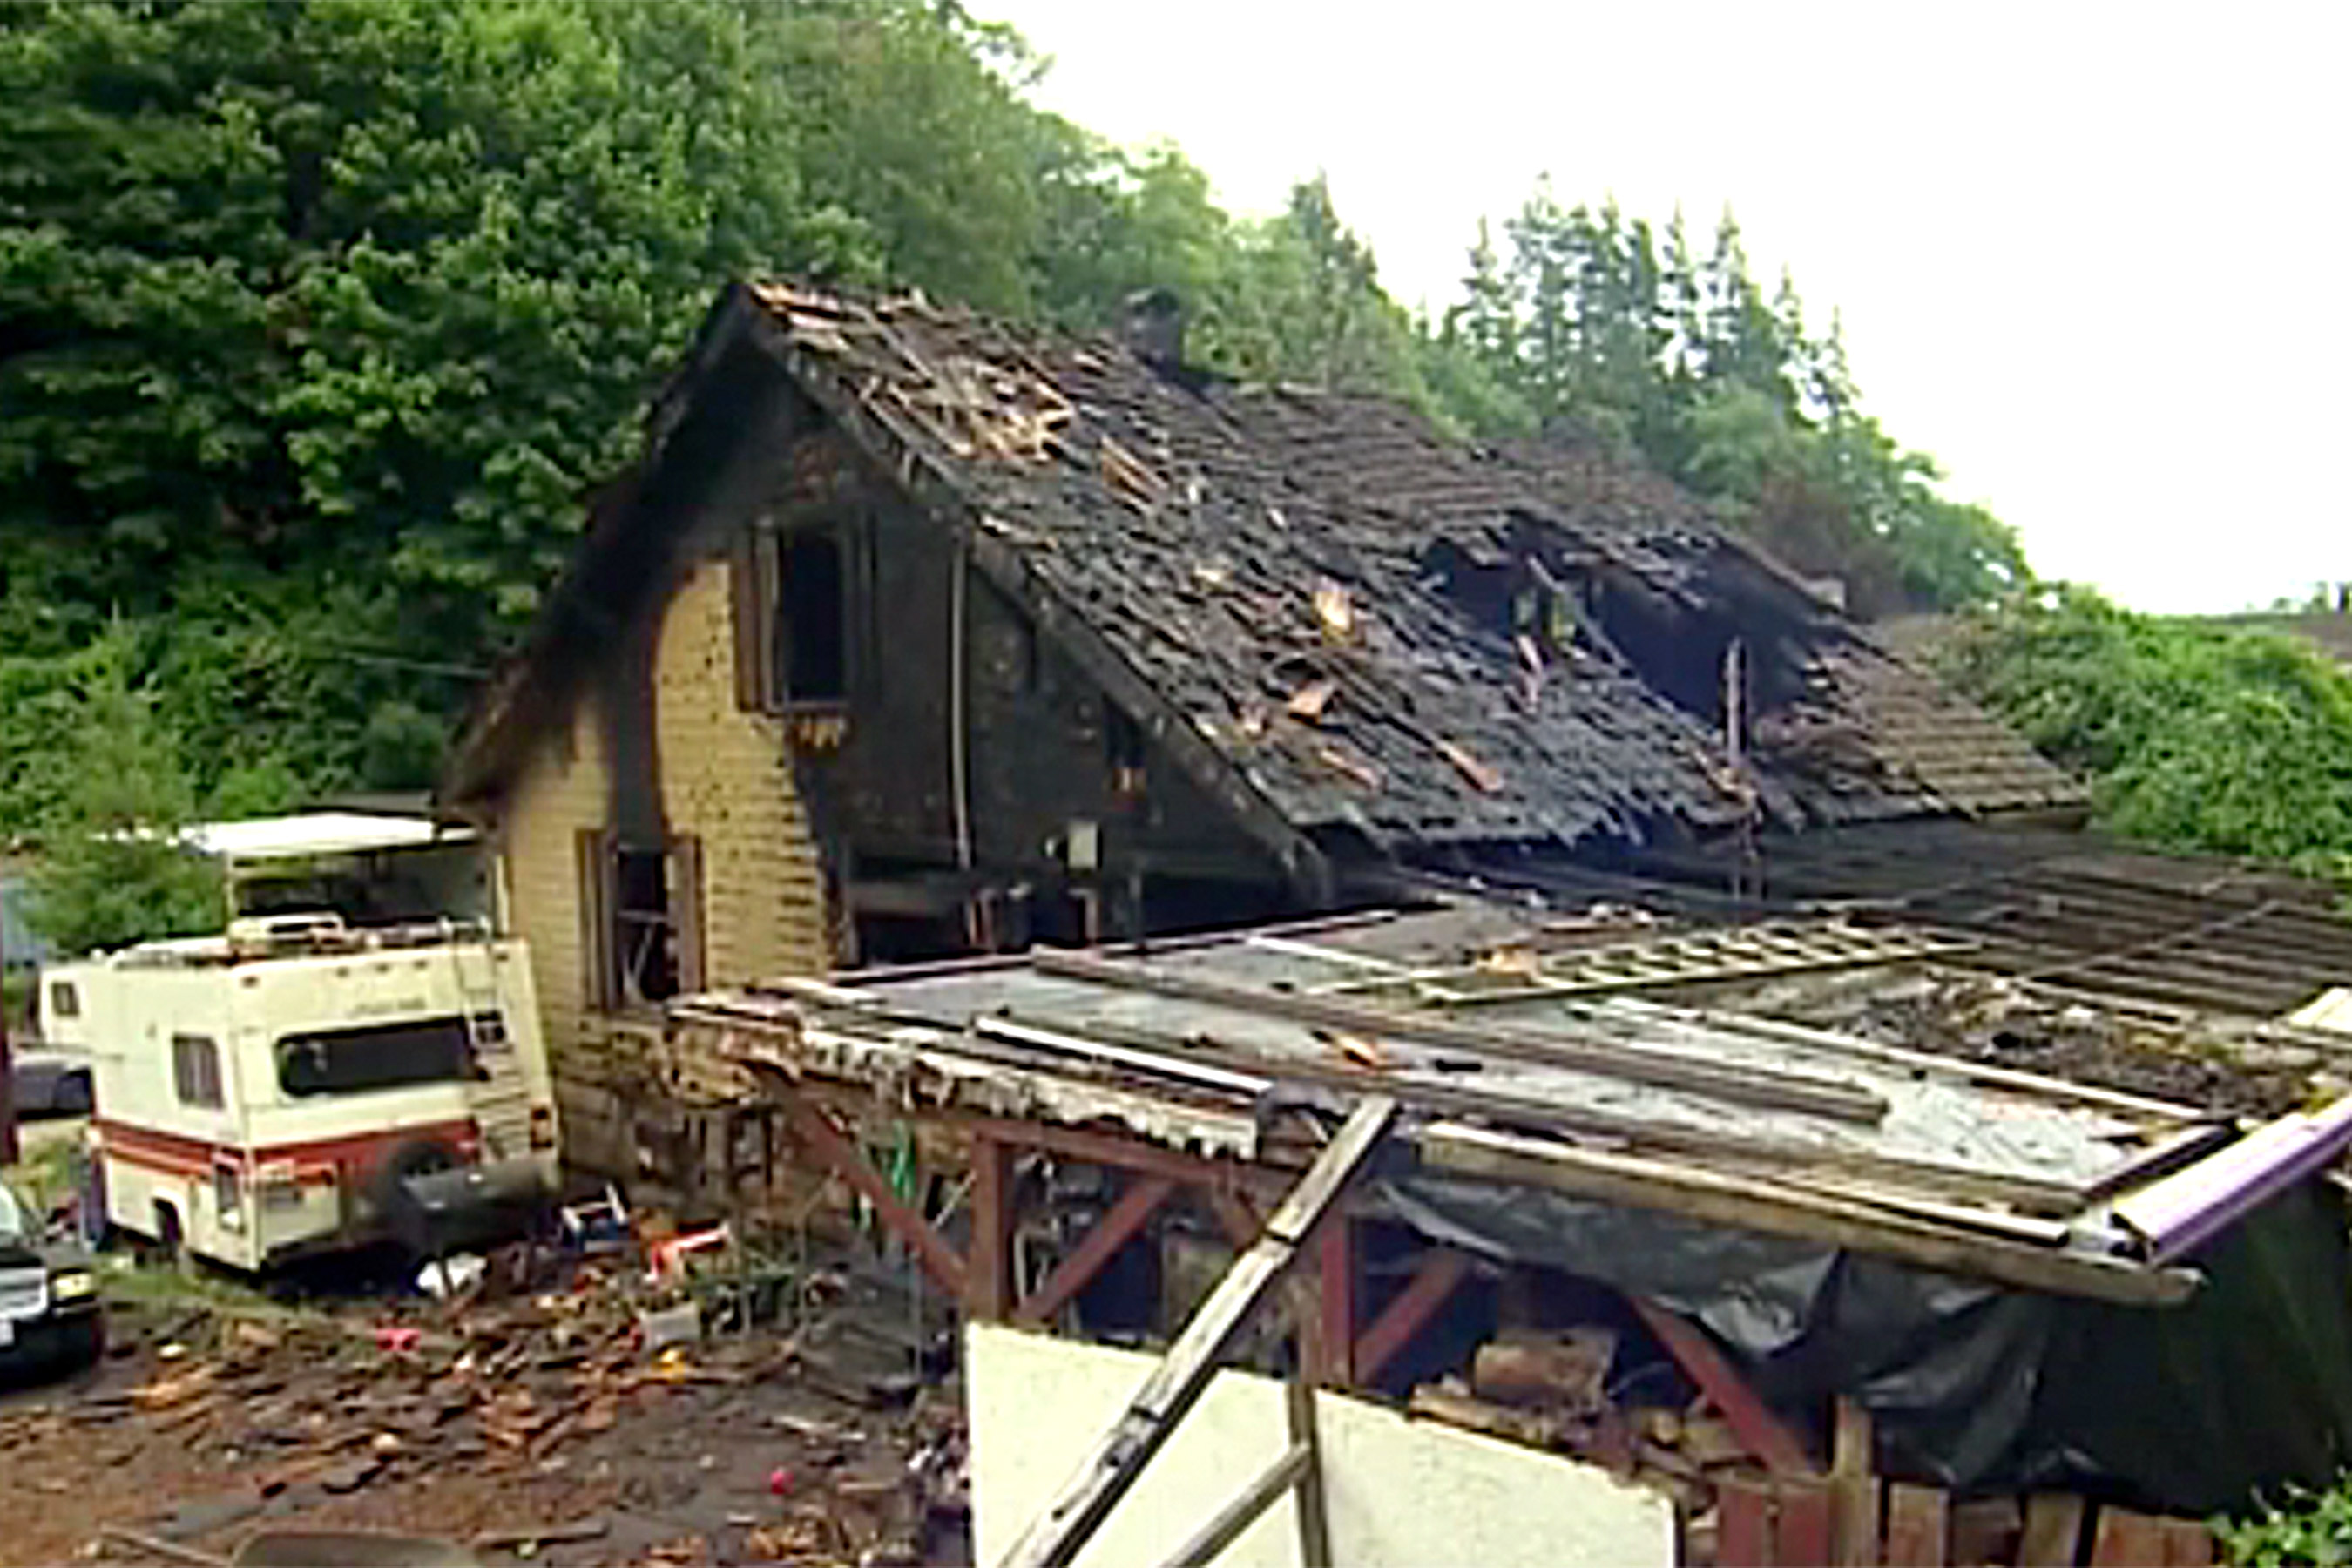 House Burned Down in Aberdeen Washington